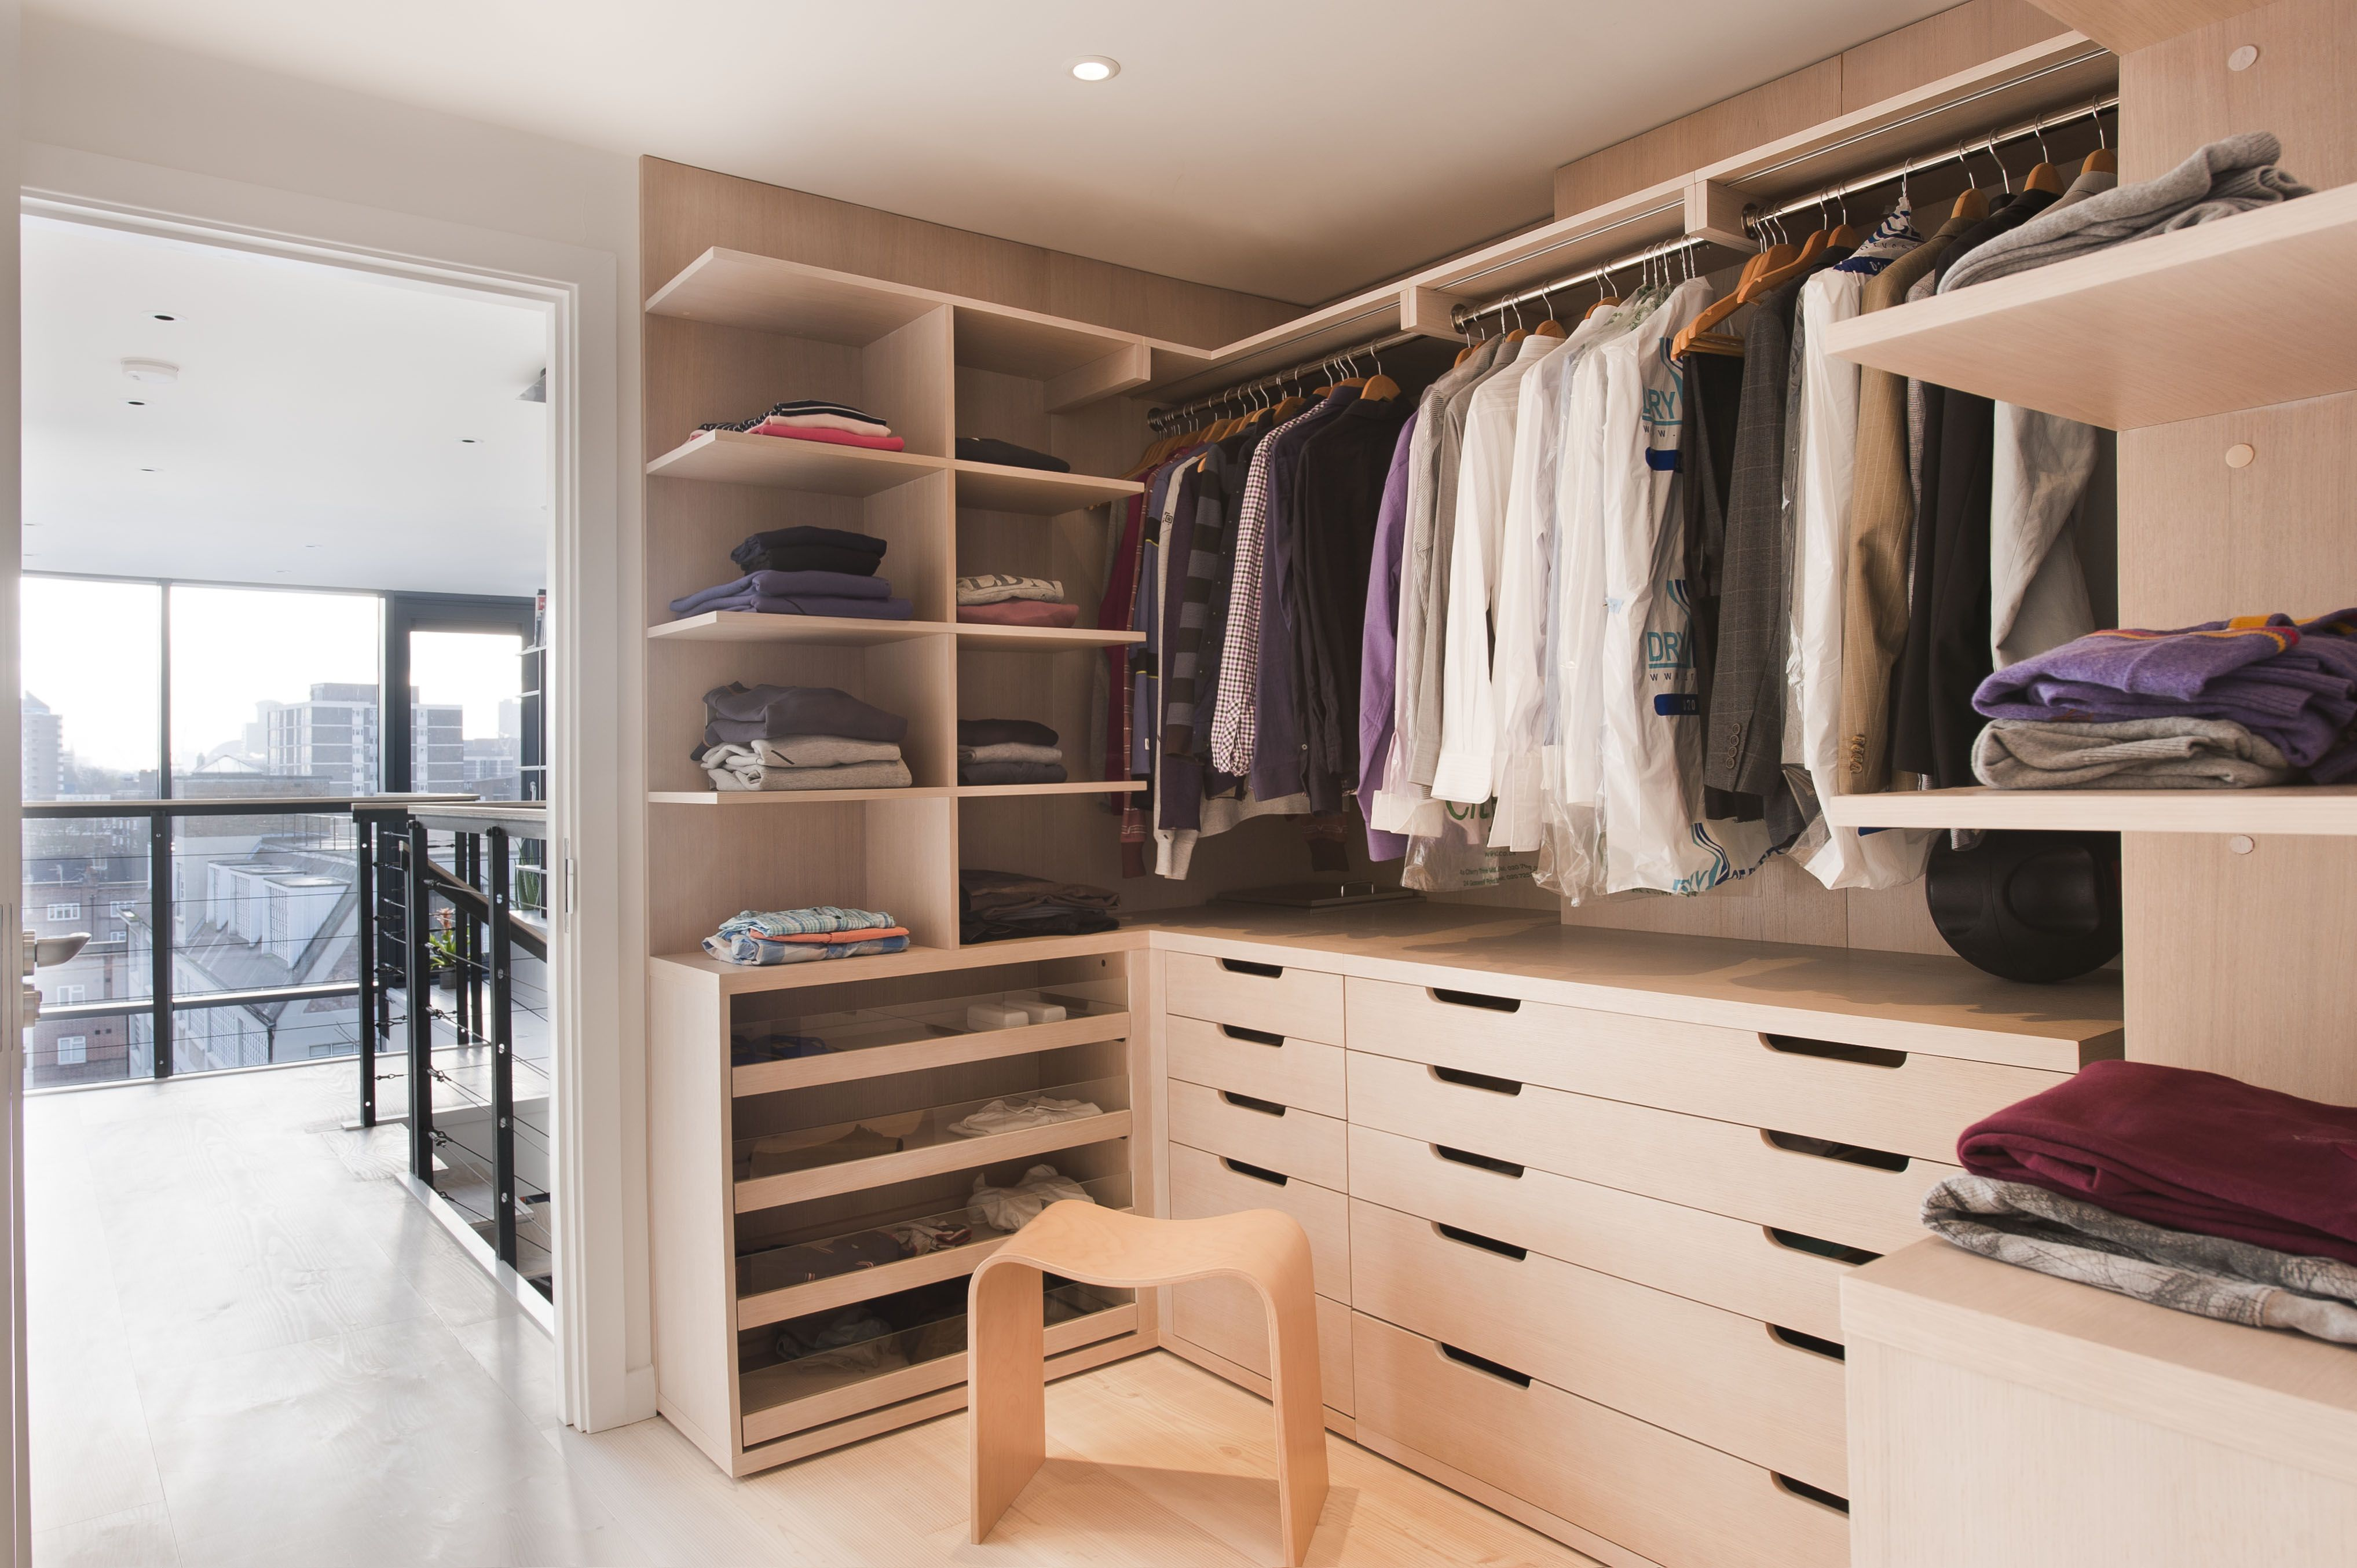 17 Best Images About Closet Organization On Pinterest | Closet  Organization, Vanities And The Closet